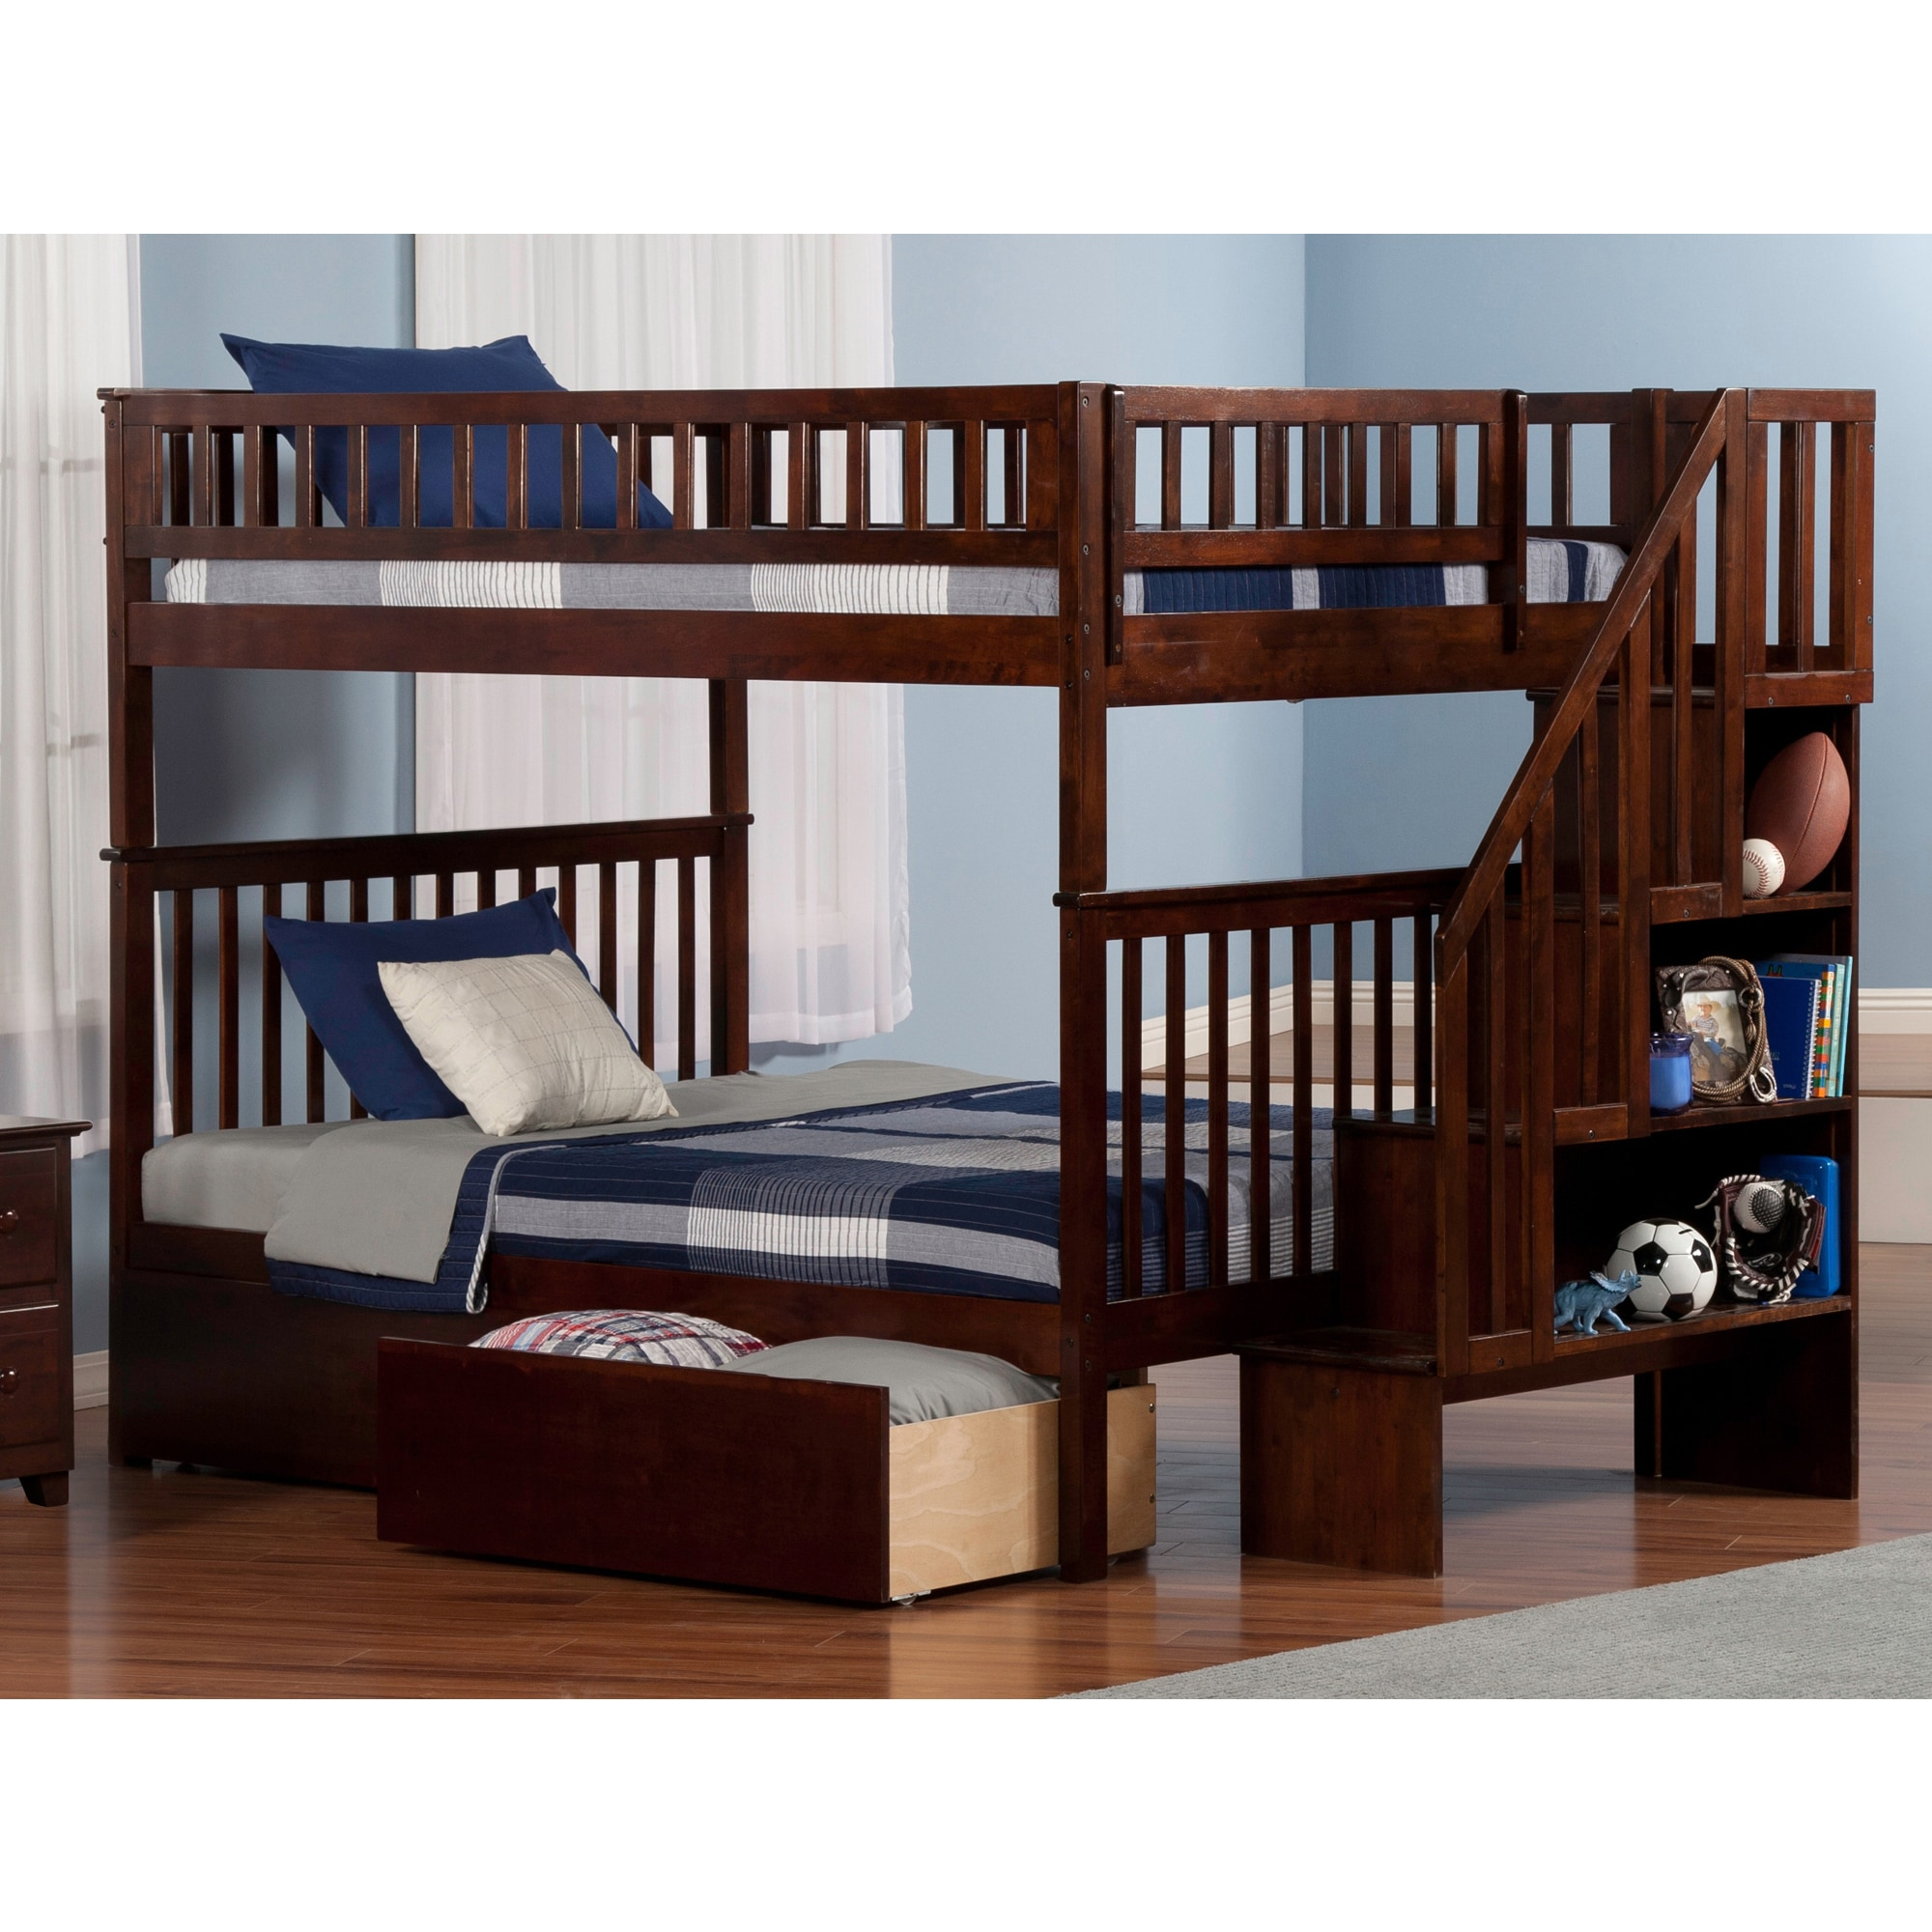 Shop Woodland Staircase Bunk Bed Full Over Full With 2 Urban Bed